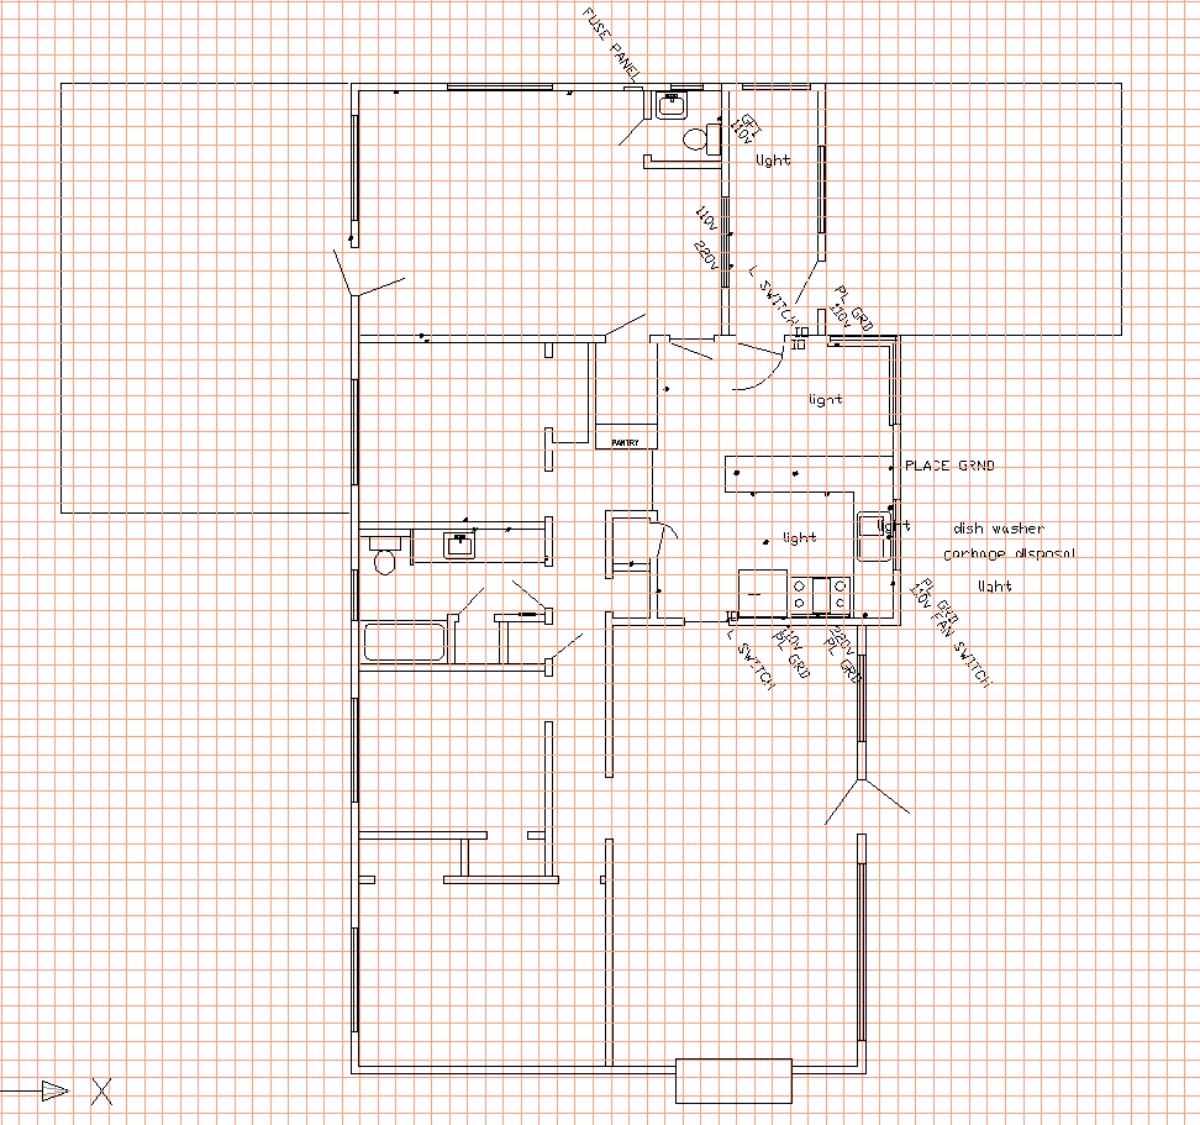 Fabulous House Plans with AutoCAD Drawing 1200 x 1125 · 927 kB · jpeg